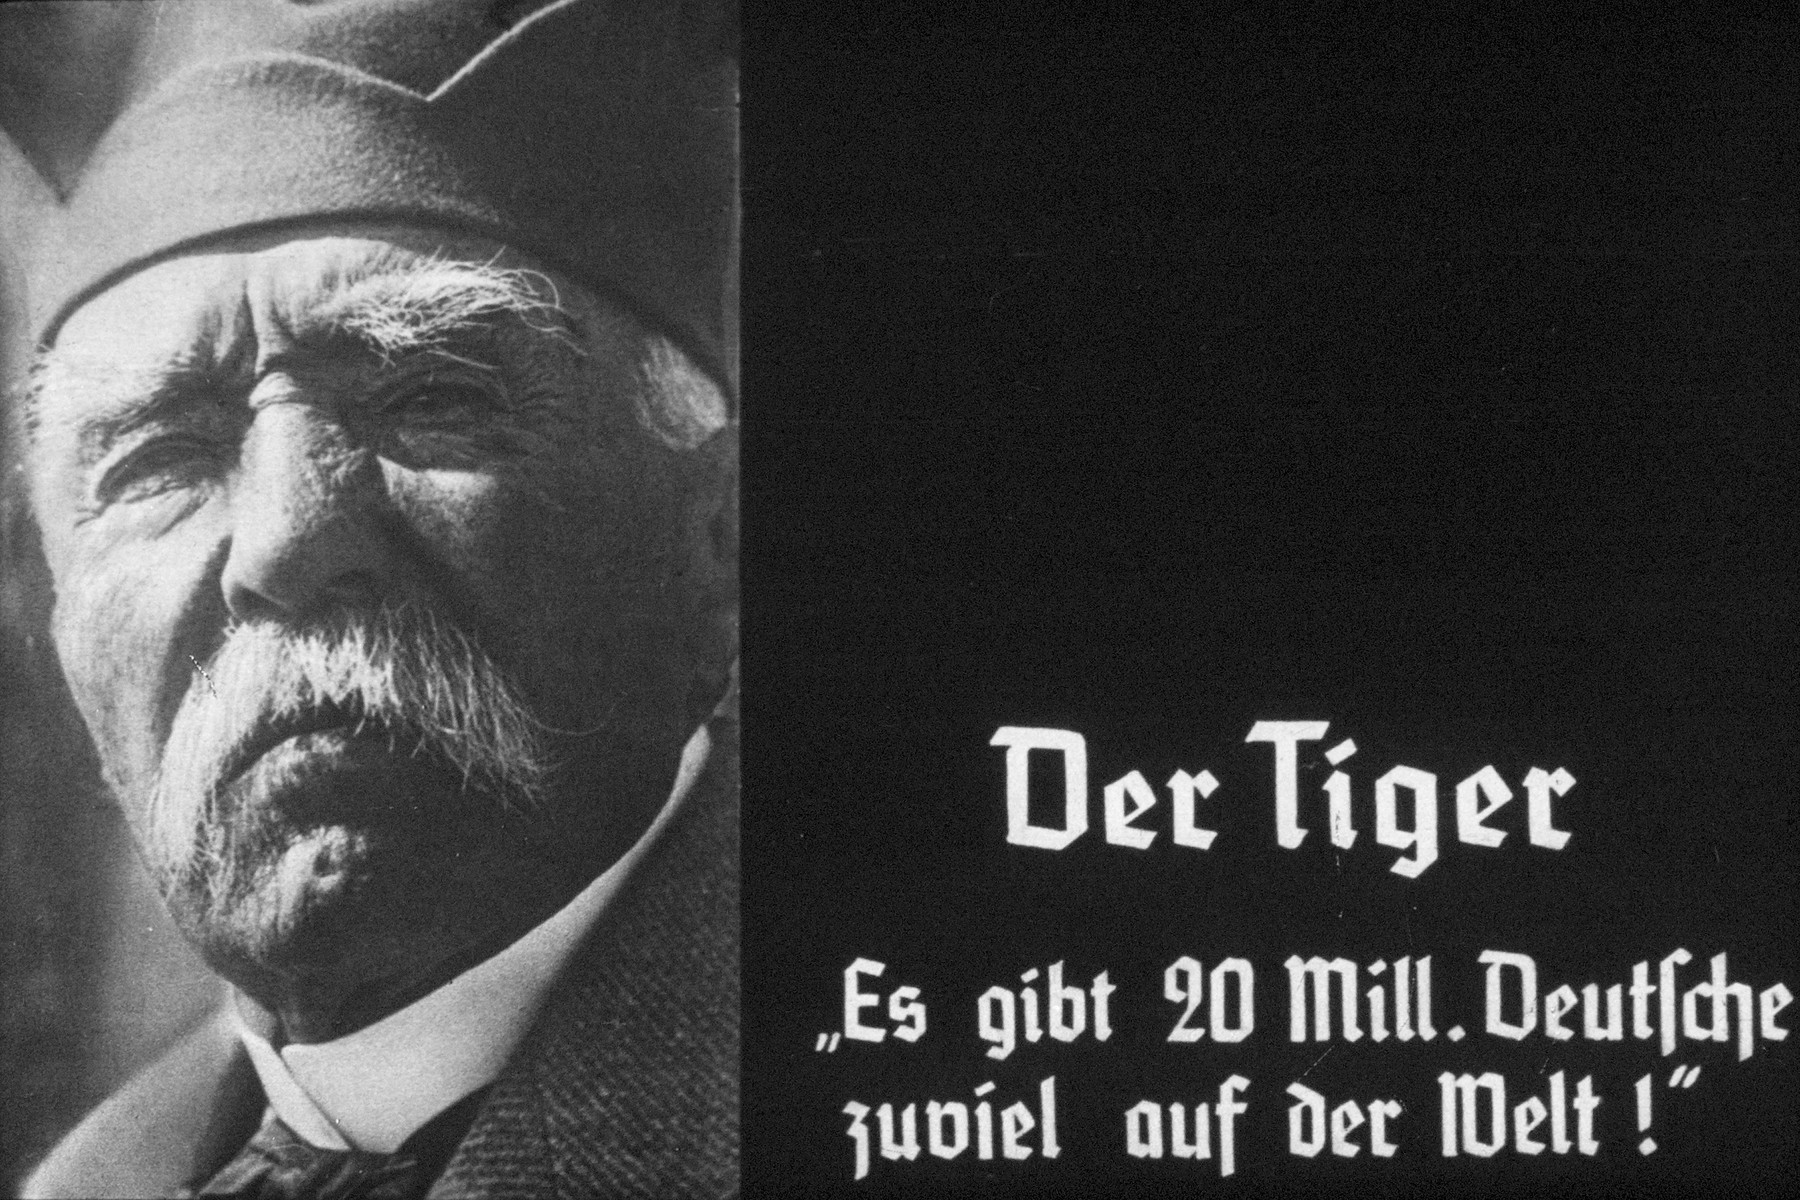 "35th slide from a Hitler Youth slideshow about the aftermath of WWI, Versailles, how it was overcome and the rise of Nazism.  Der Tiger ""Es gibt 20 Mill. Deutsche zuviel auf der Welt!"" // There are 20 million Germans too many in the world"